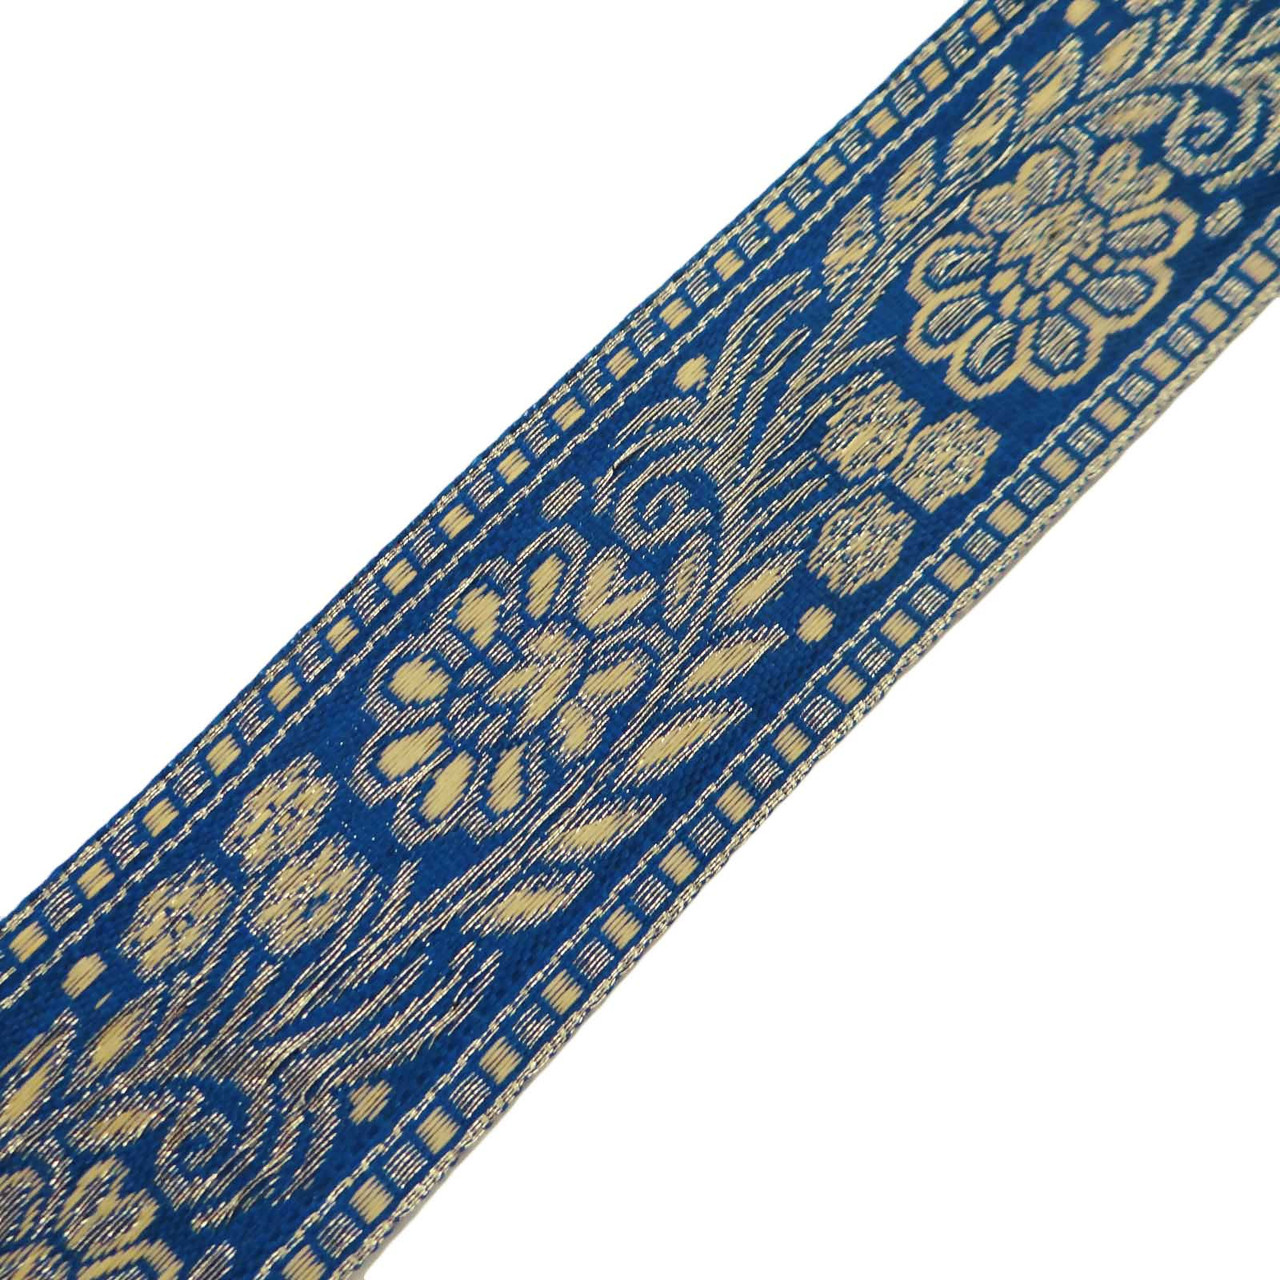 Floral Sari Border Purple India Ribbon Trim Jacquard Fabric Craft Lace By 1 Yd